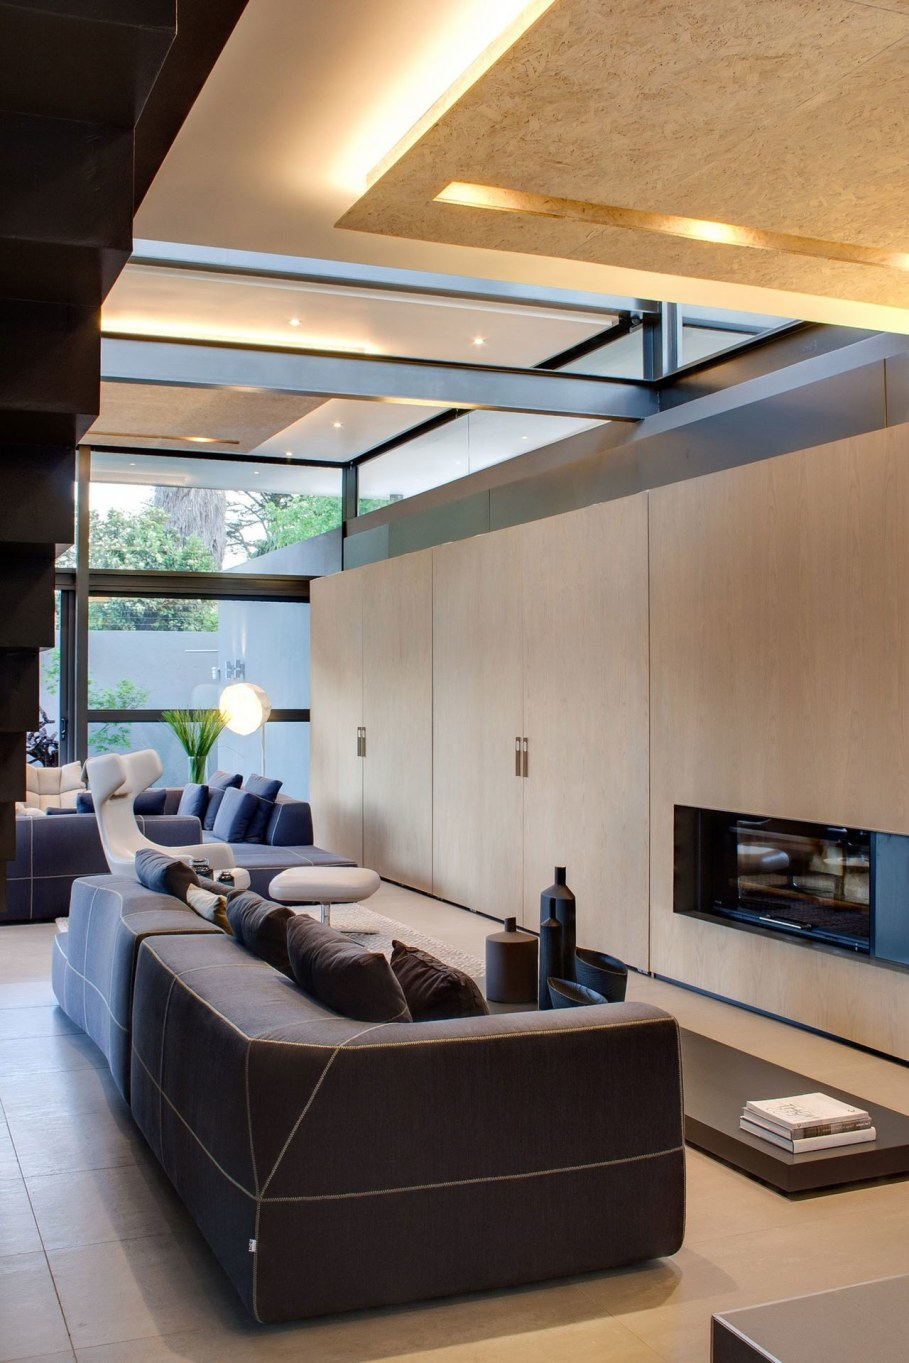 Sar - the luxurious, comfortable and functional private house - living room 2